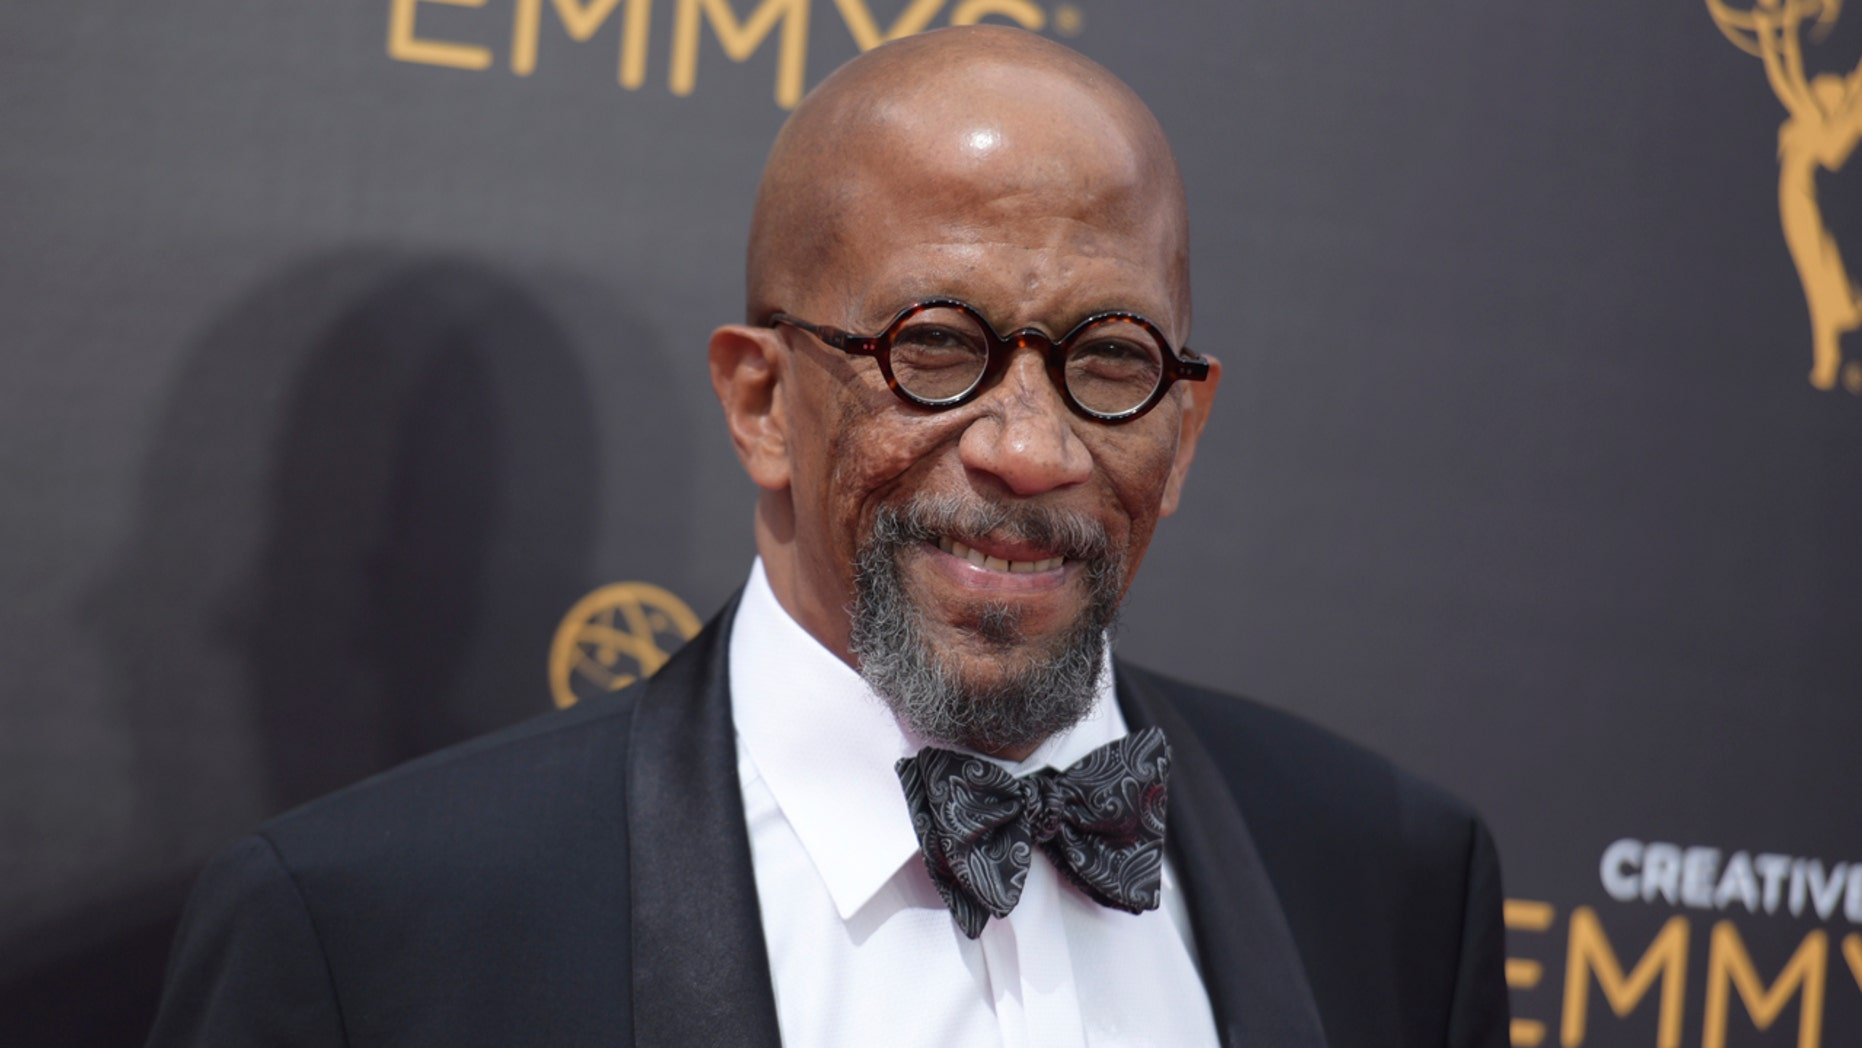 FILE - In this Sept. 10, 2016 file photo, Reg E. Cathey arrives at night one of the Creative Arts Emmy Awards at the Microsoft Theater in Los Angeles.